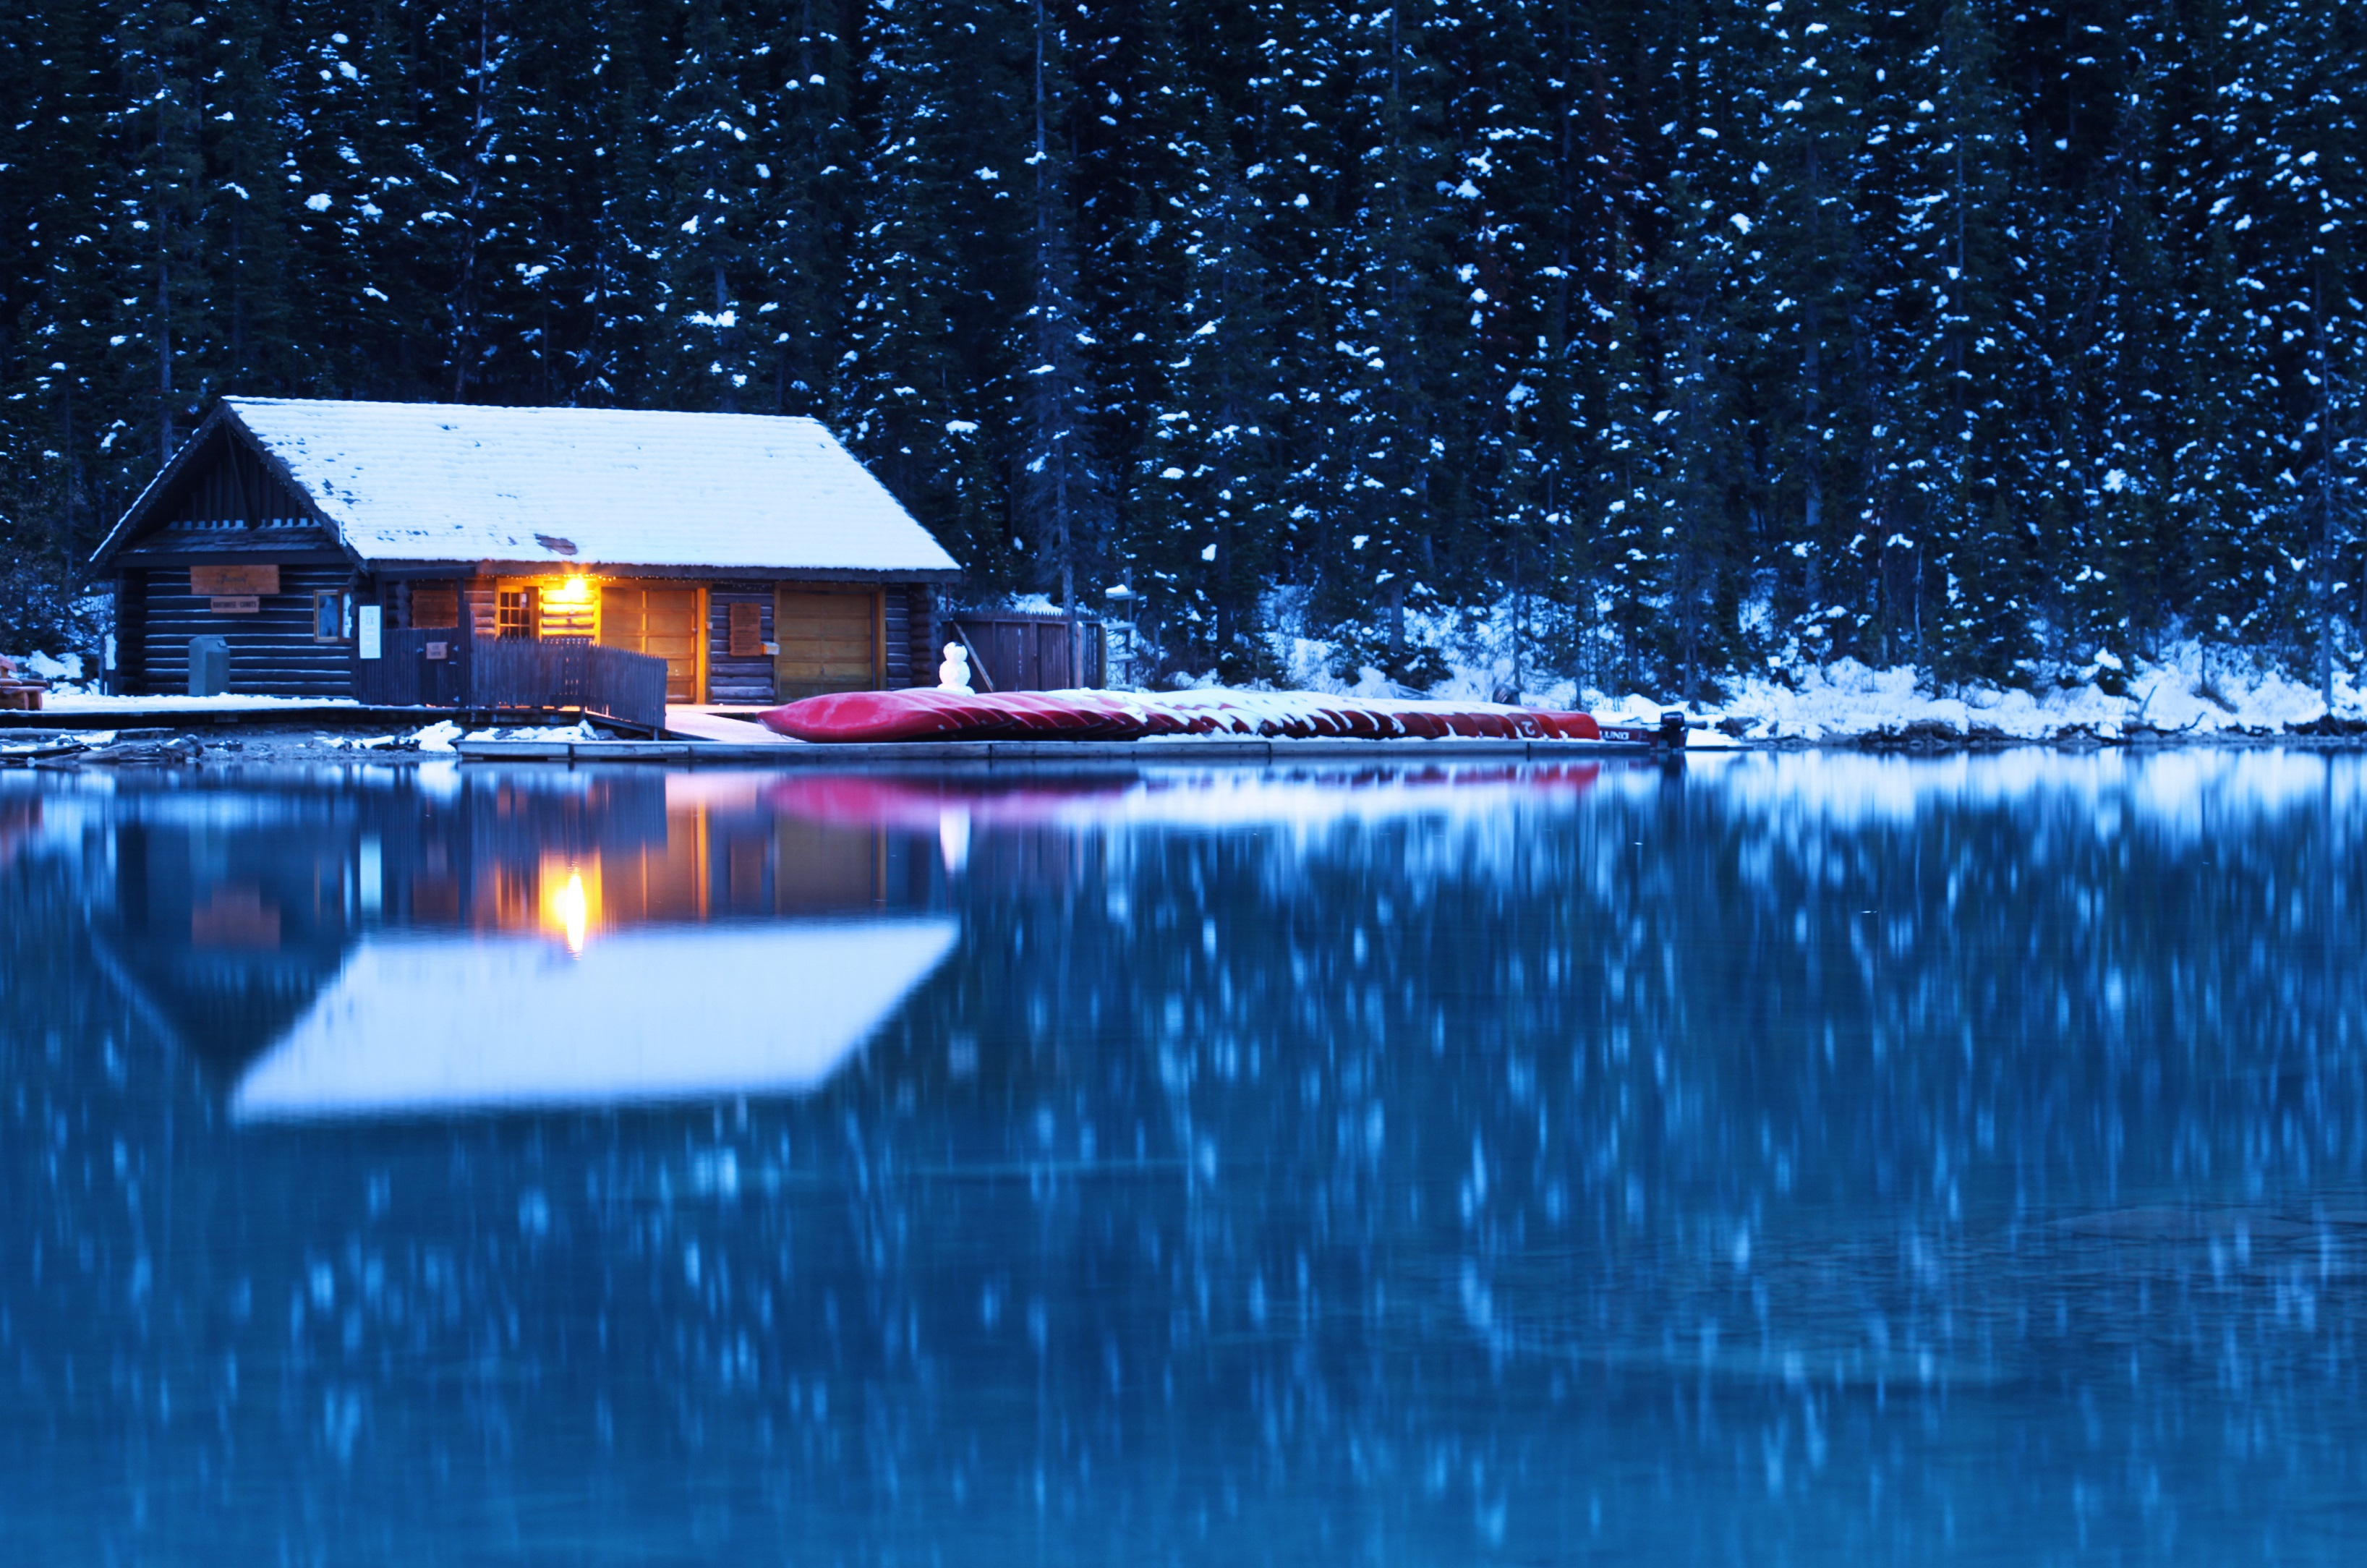 How to Break Free of Creative Cabin Fever